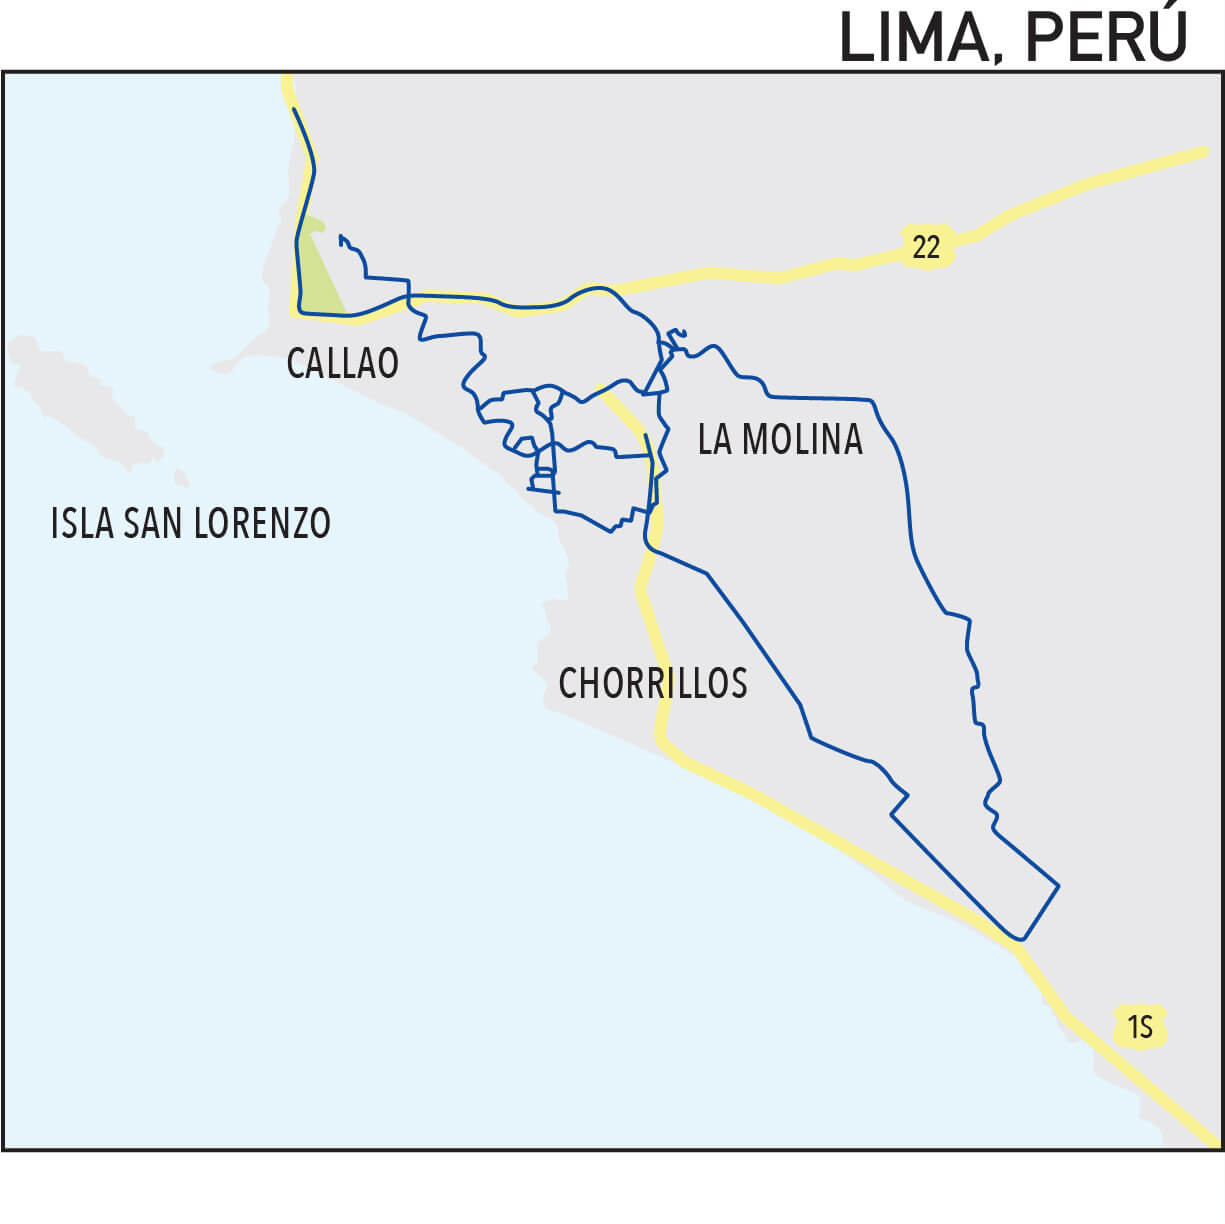 Capillarity Perú map Ufinet